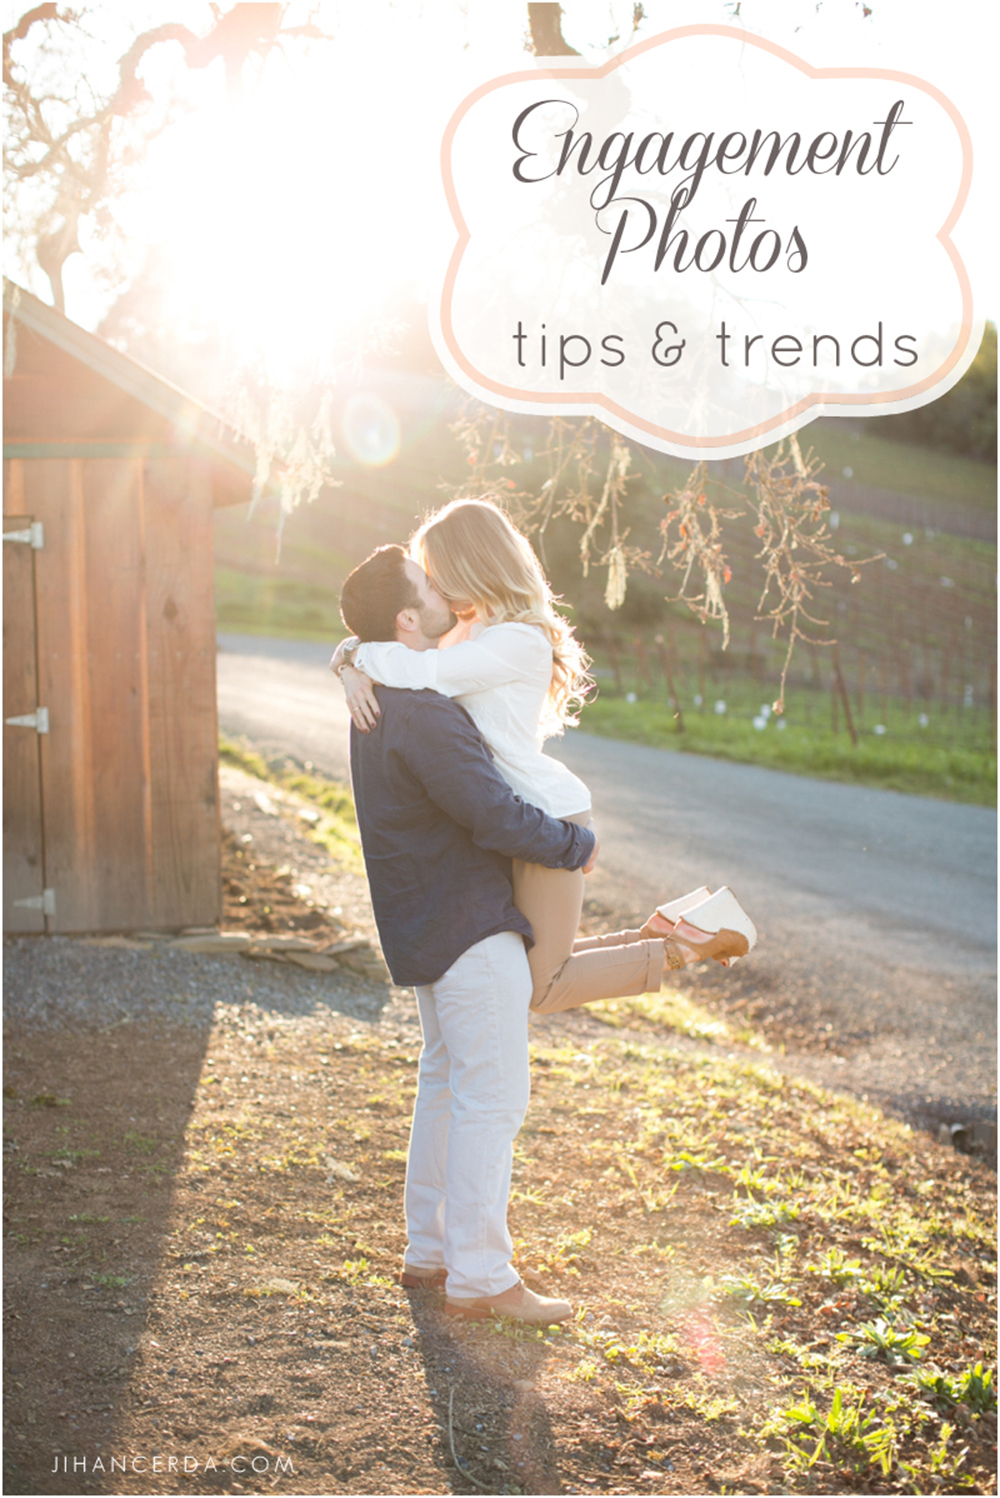 ENGAGEMENT PHOTOS TIPS AND TRENDS